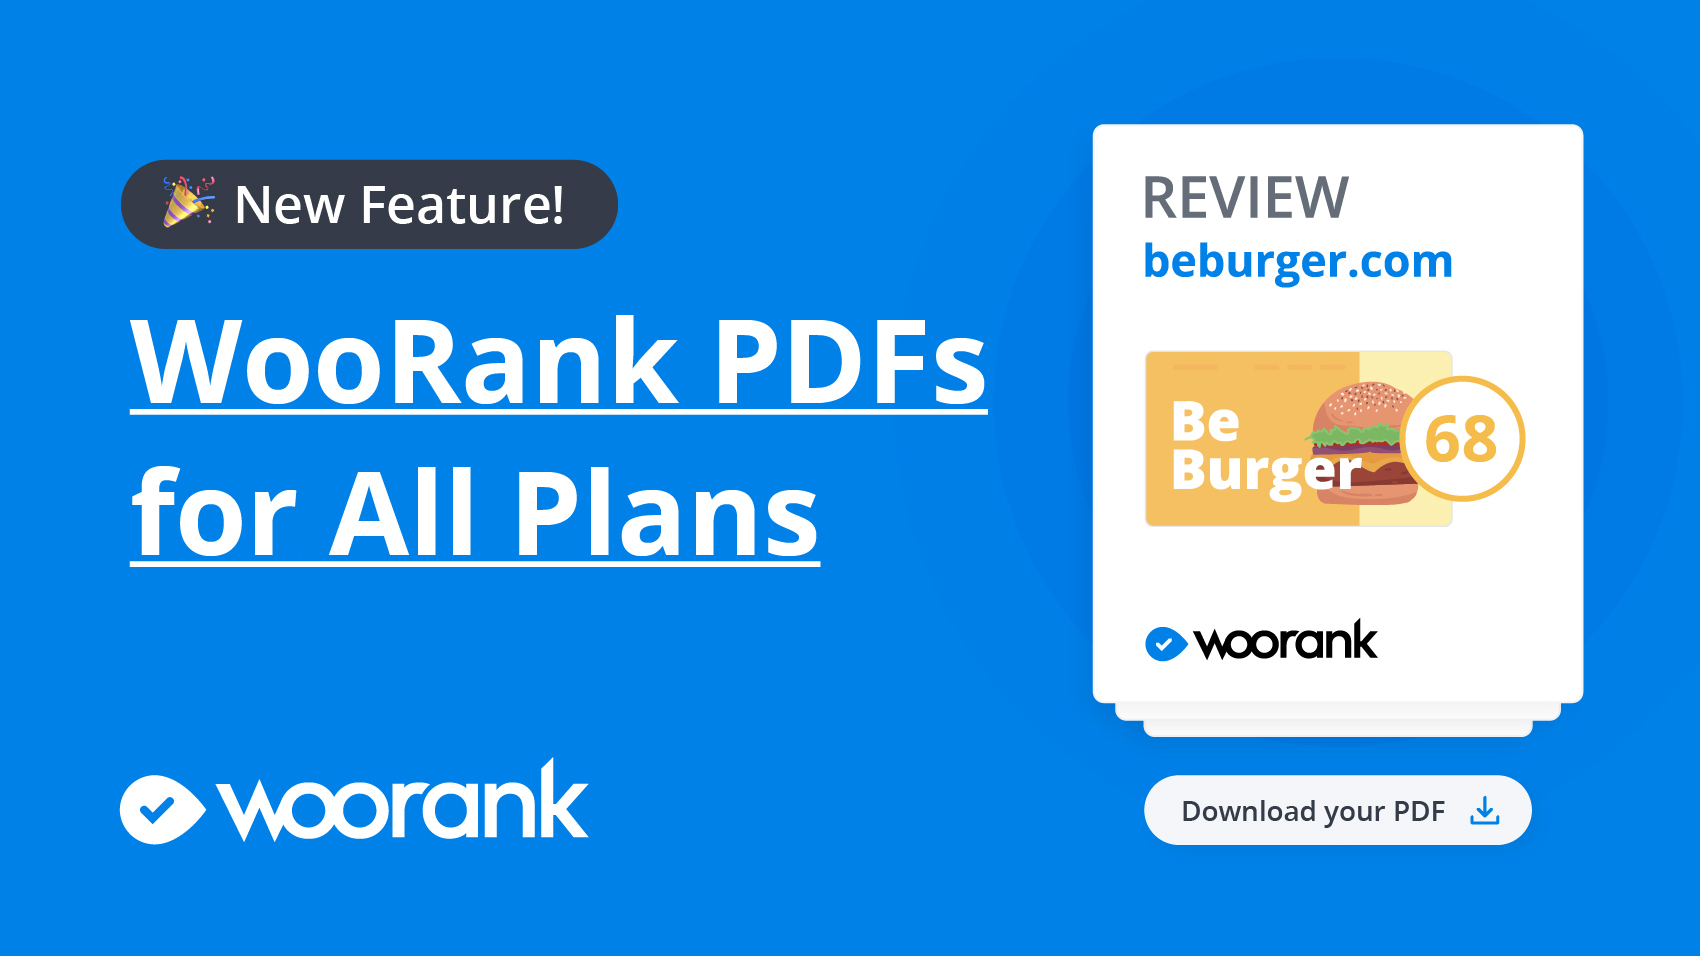 WooRank's PDFs Now Available to All Users!